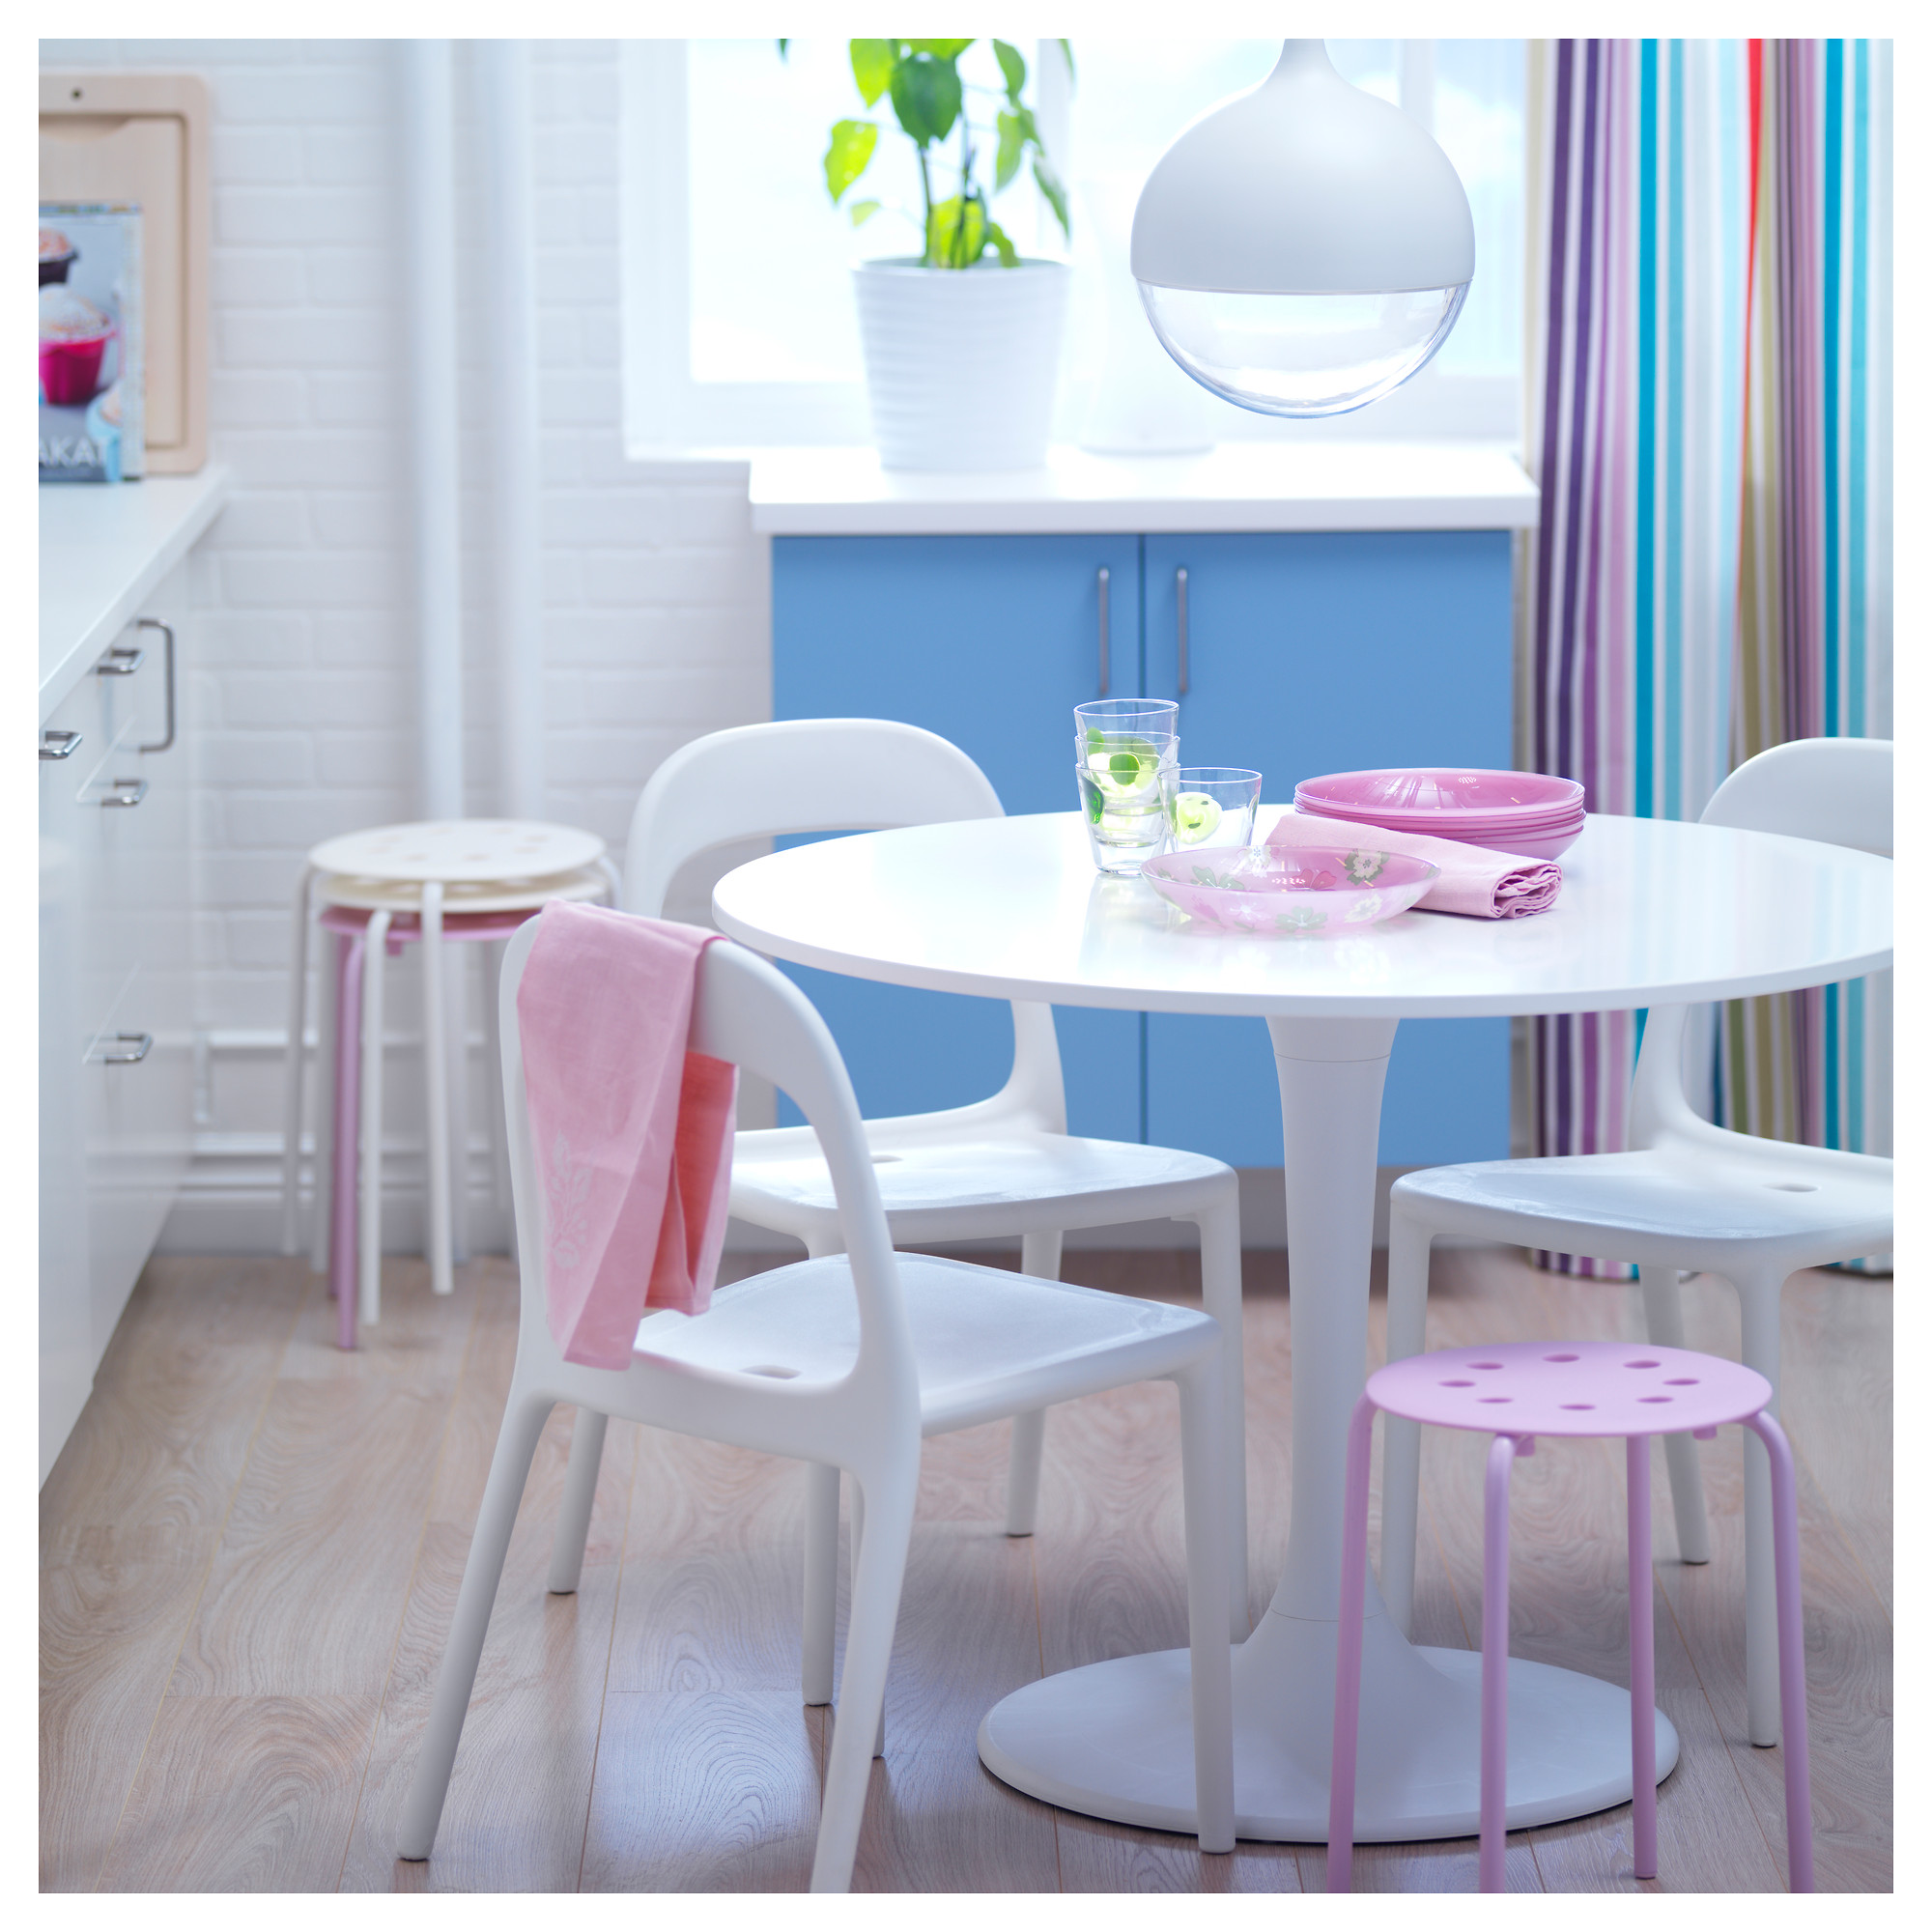 Modern ikea tulip table homesfeed - Colored kitchen chairs ...